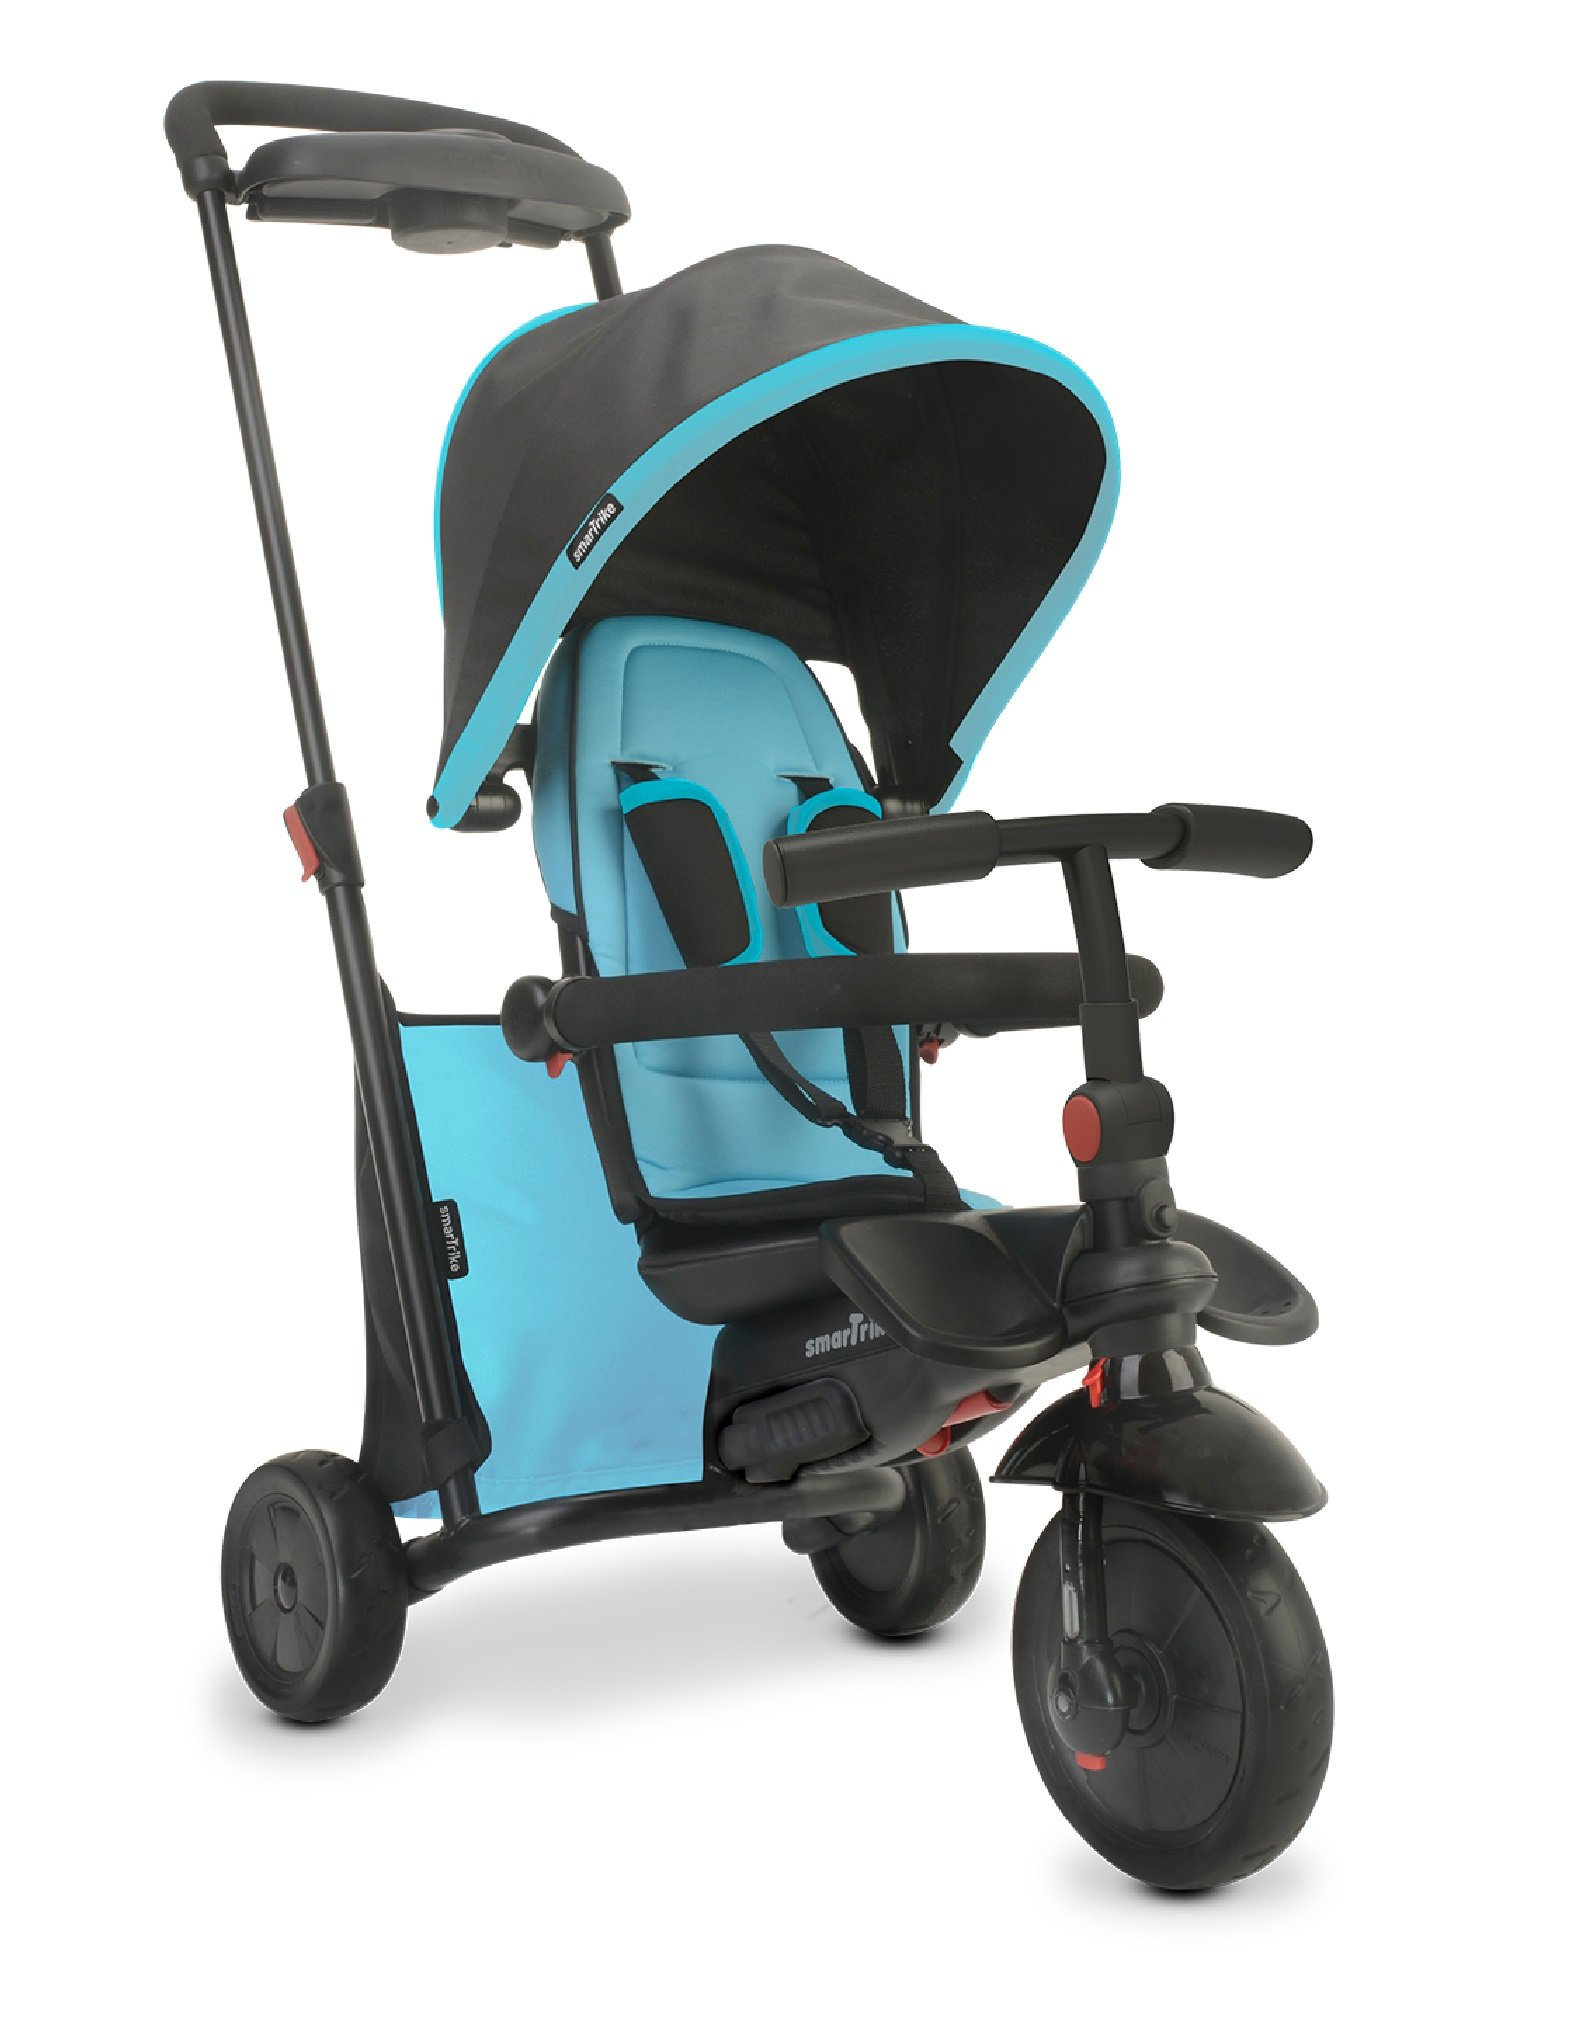 smarTrike Smartfold 500 Baby Tricycle, Blue by smarTrike